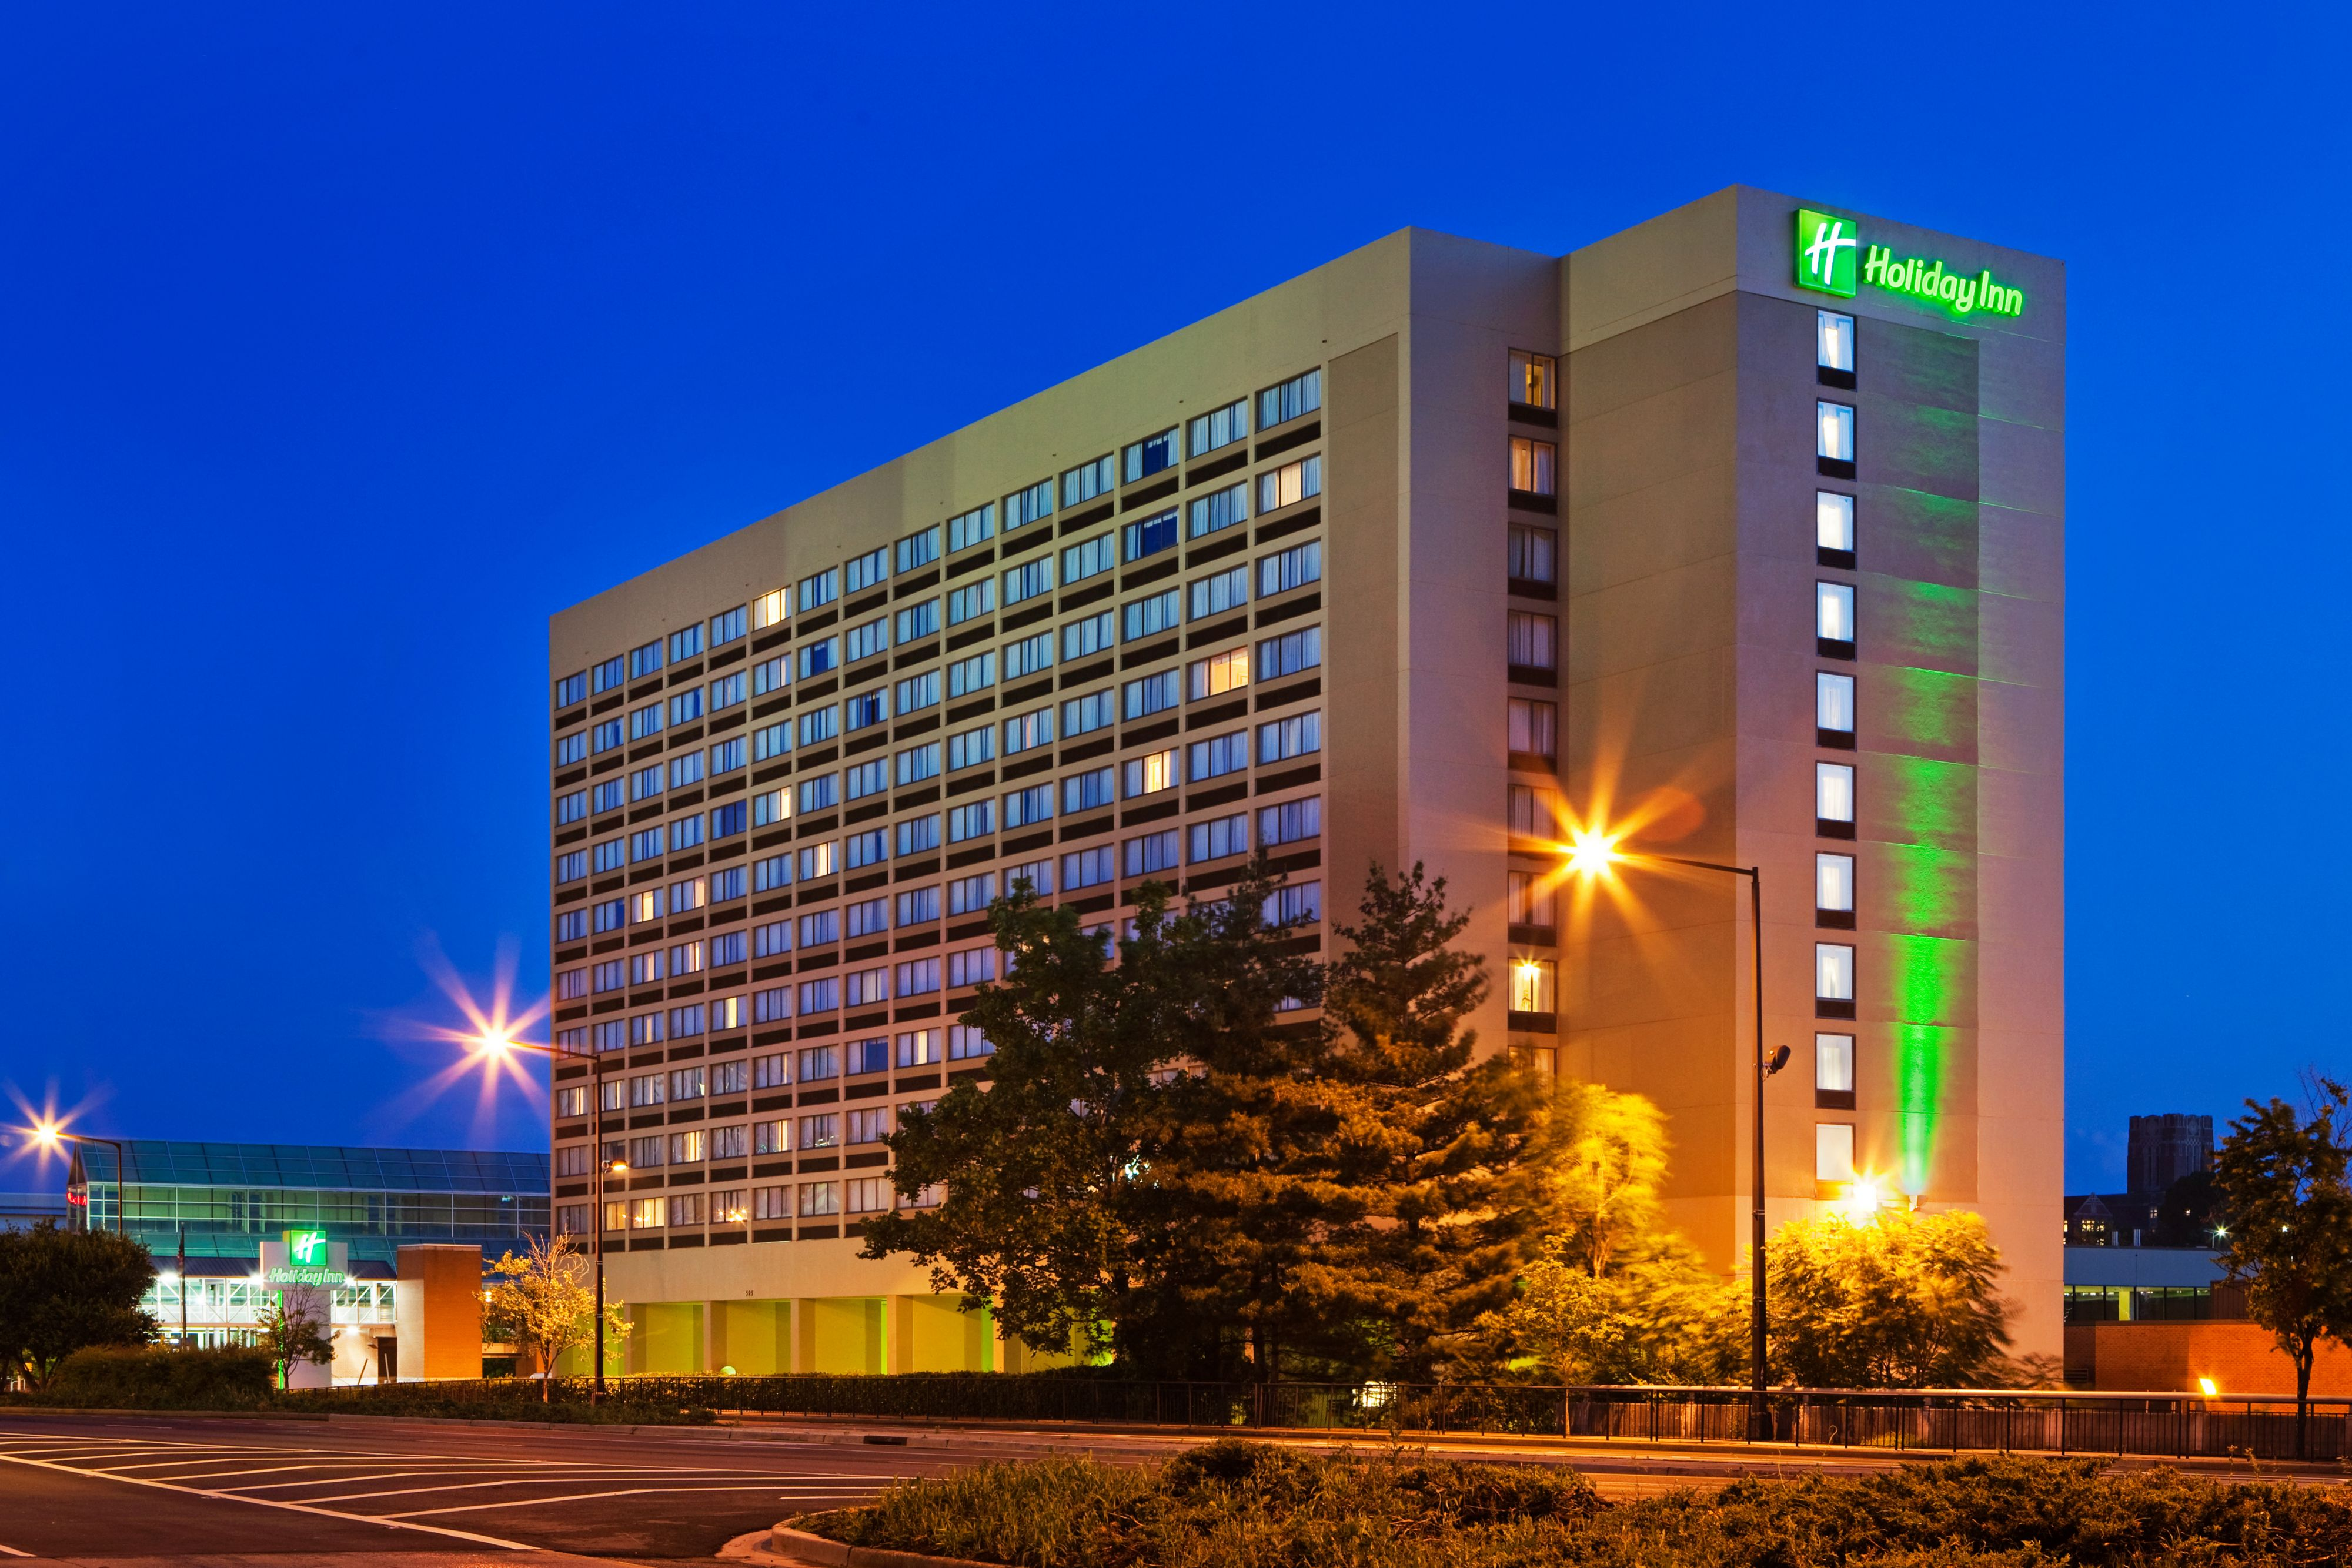 Holiday Inn Knoxville Downtown Knoxville Tennessee TN